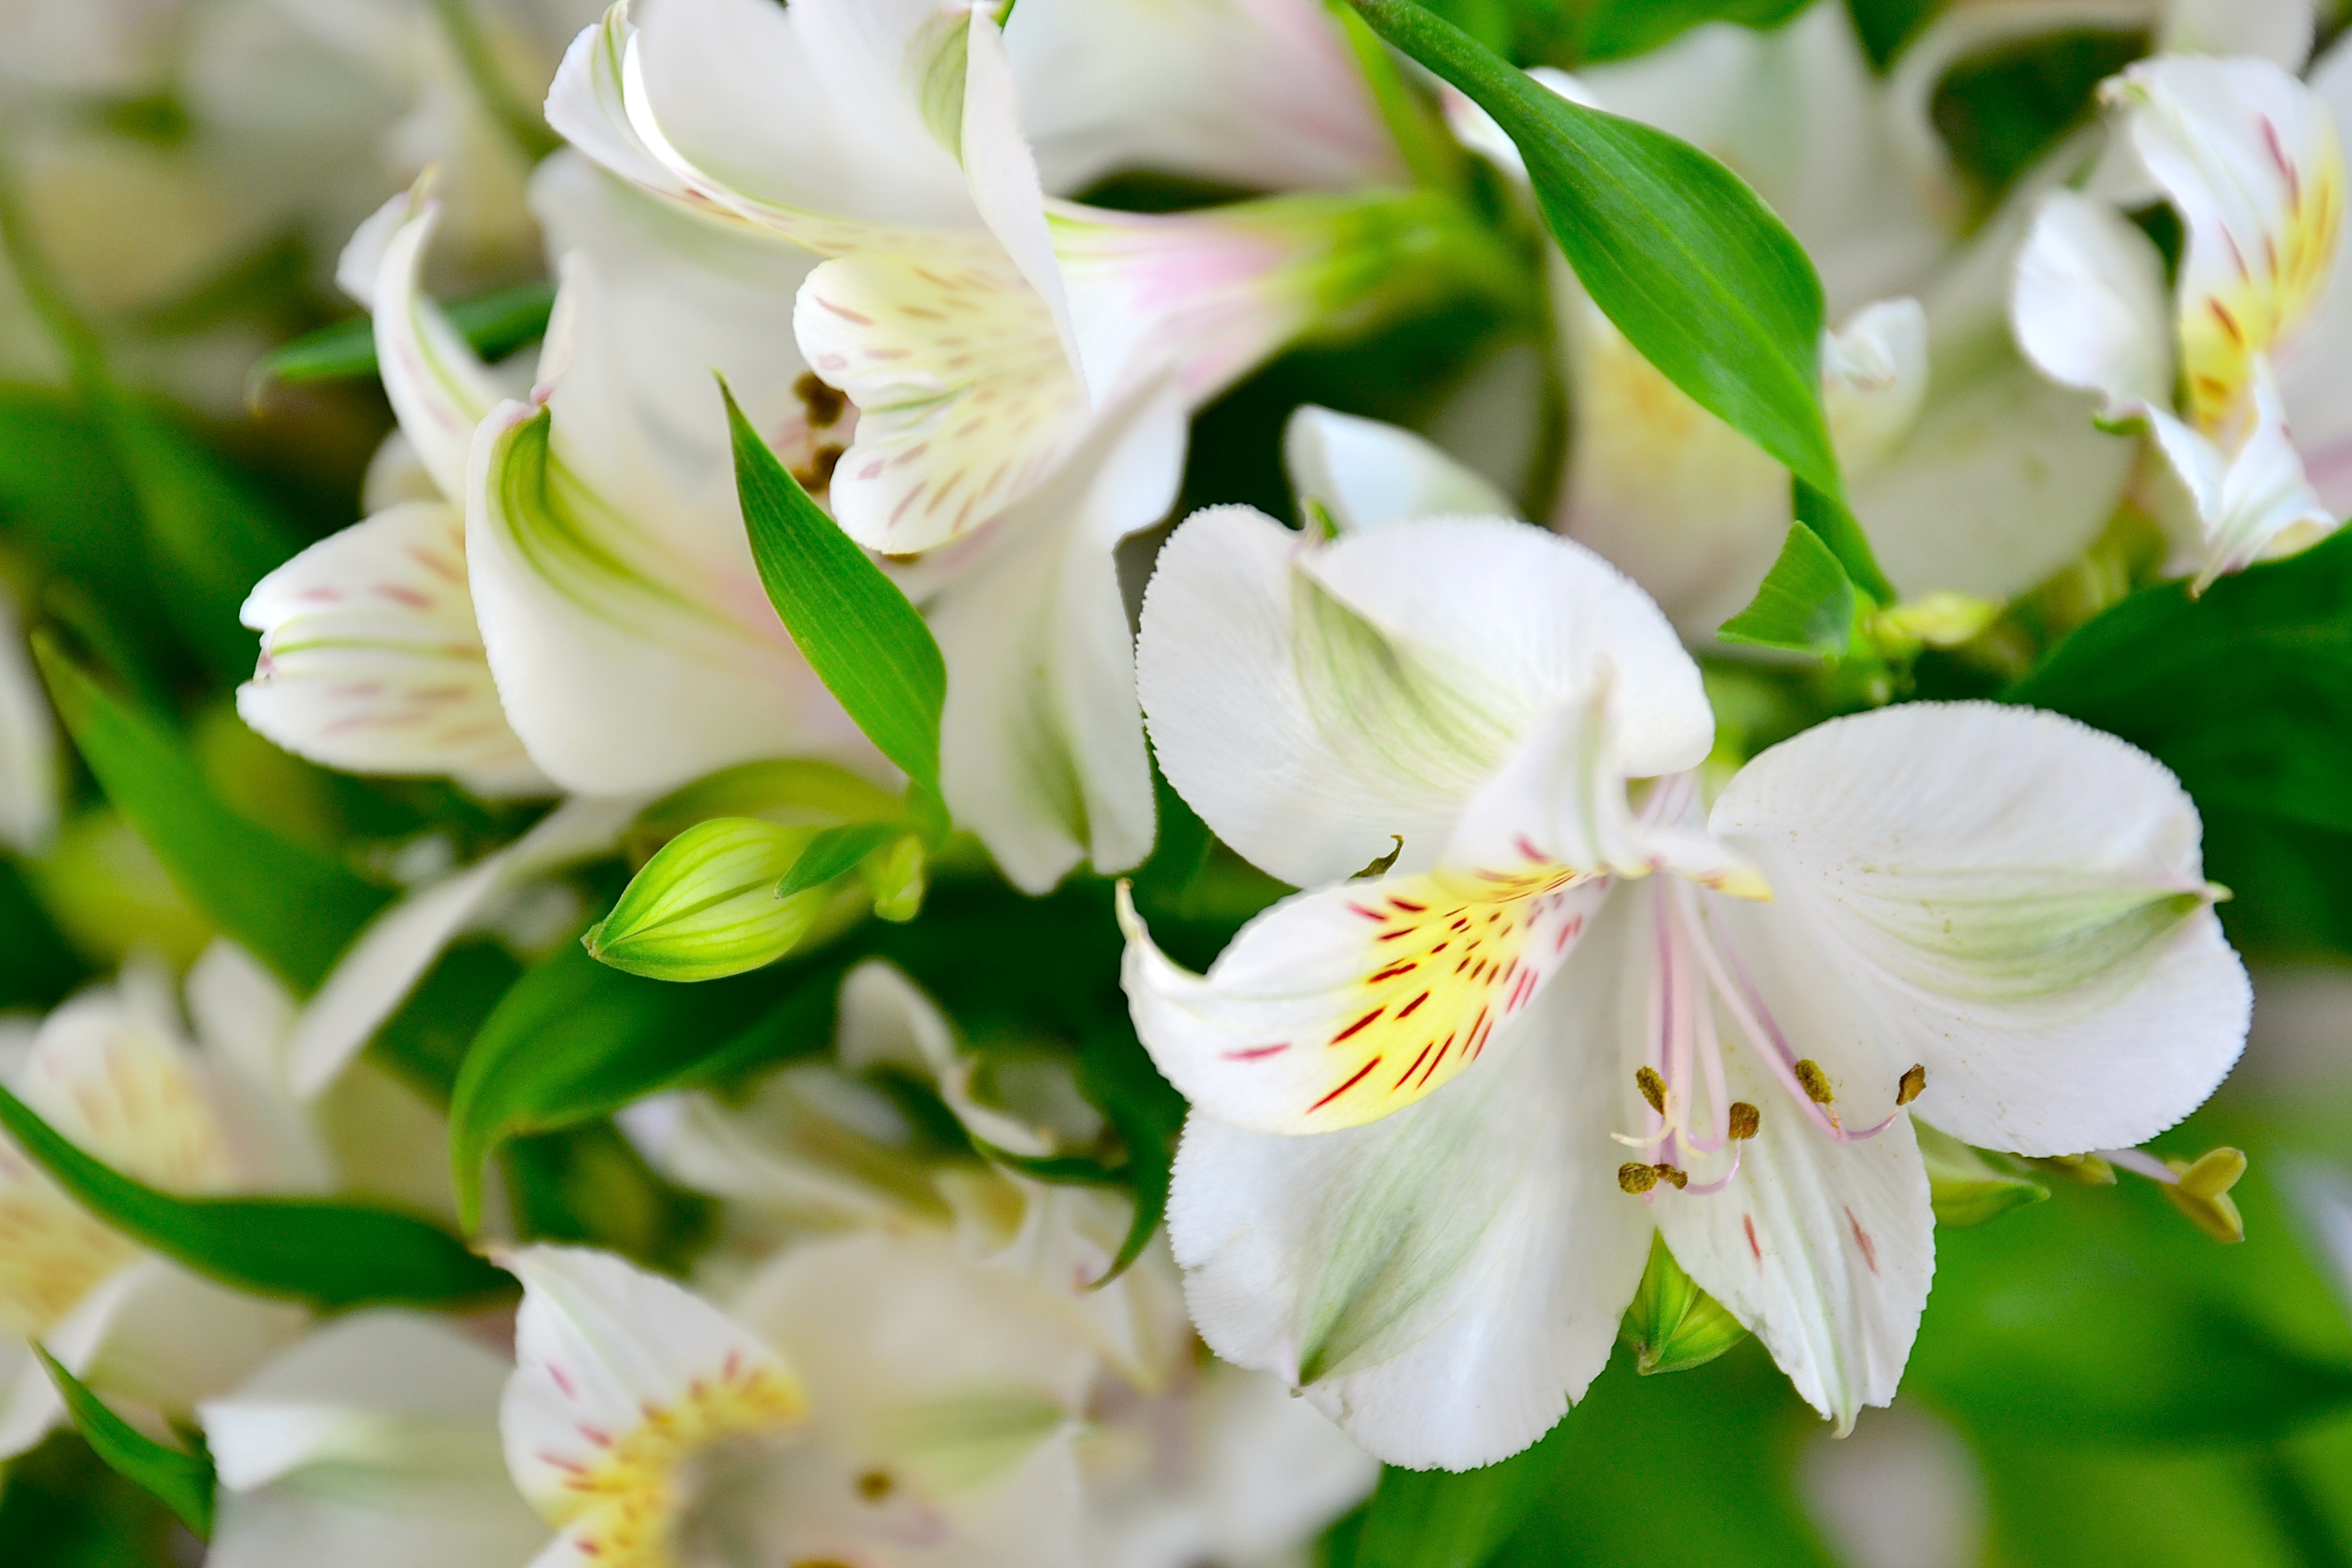 105536 download wallpaper Flowers, Lilies, Petals, Buds, Flora screensavers and pictures for free